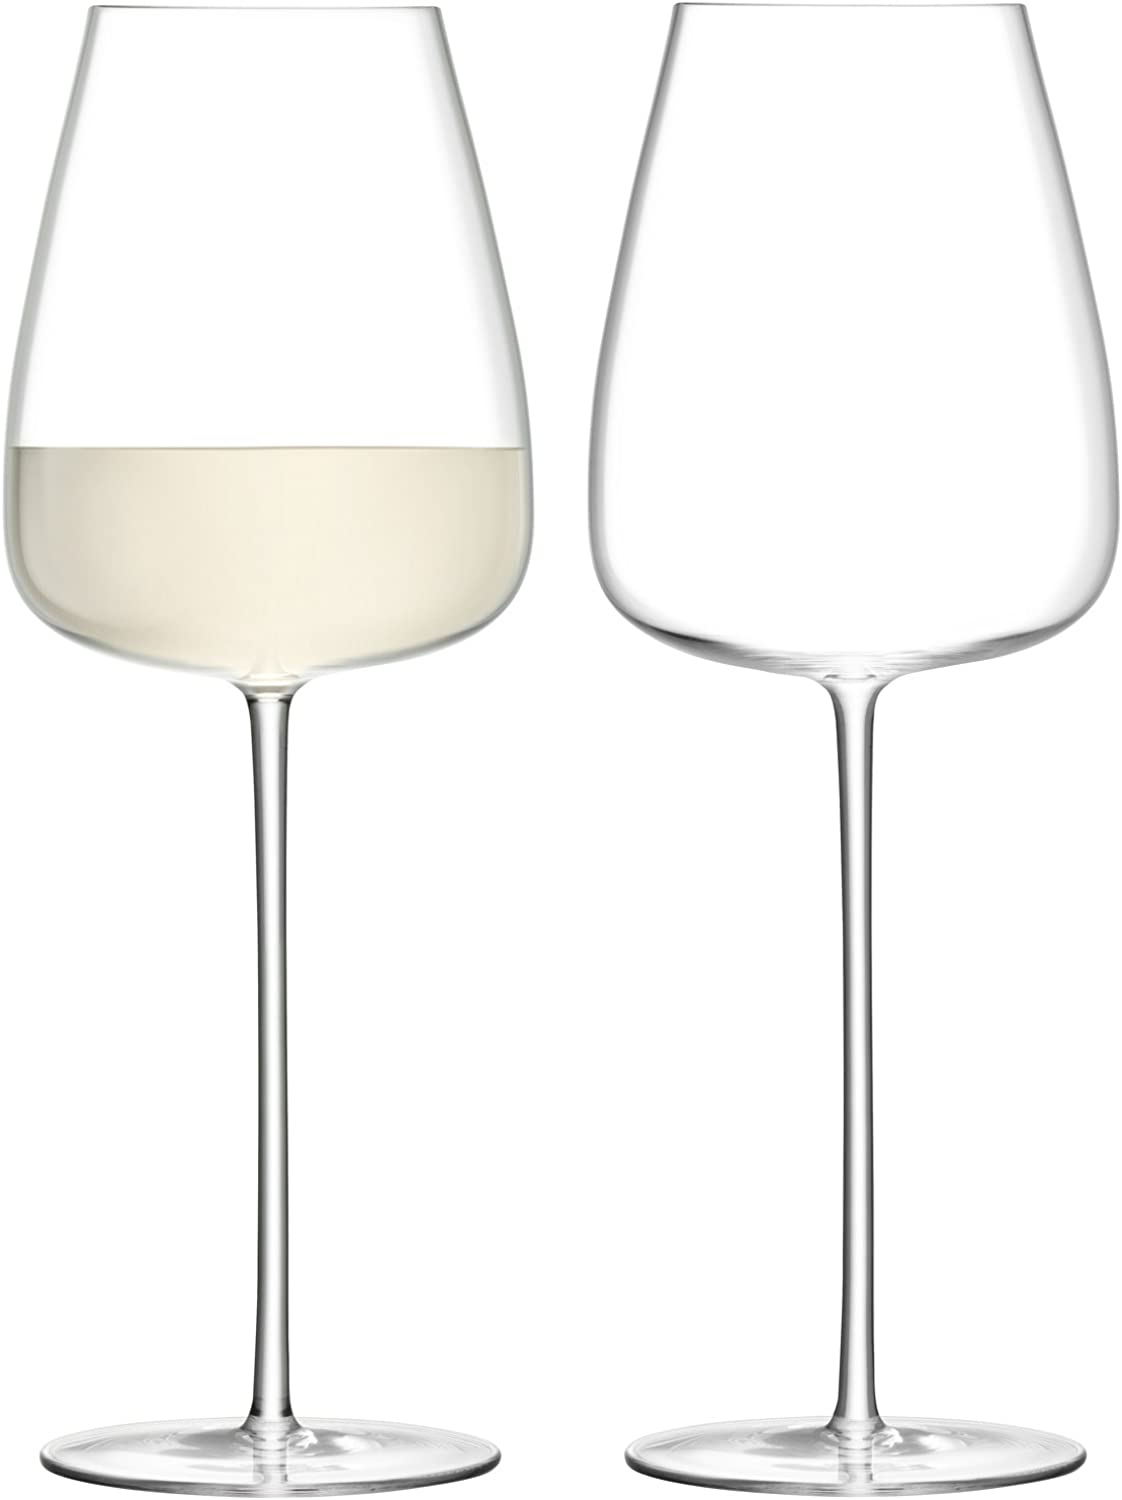 LSA International G1427-25-191  Culture  White Wine Glass, One Size, Clear